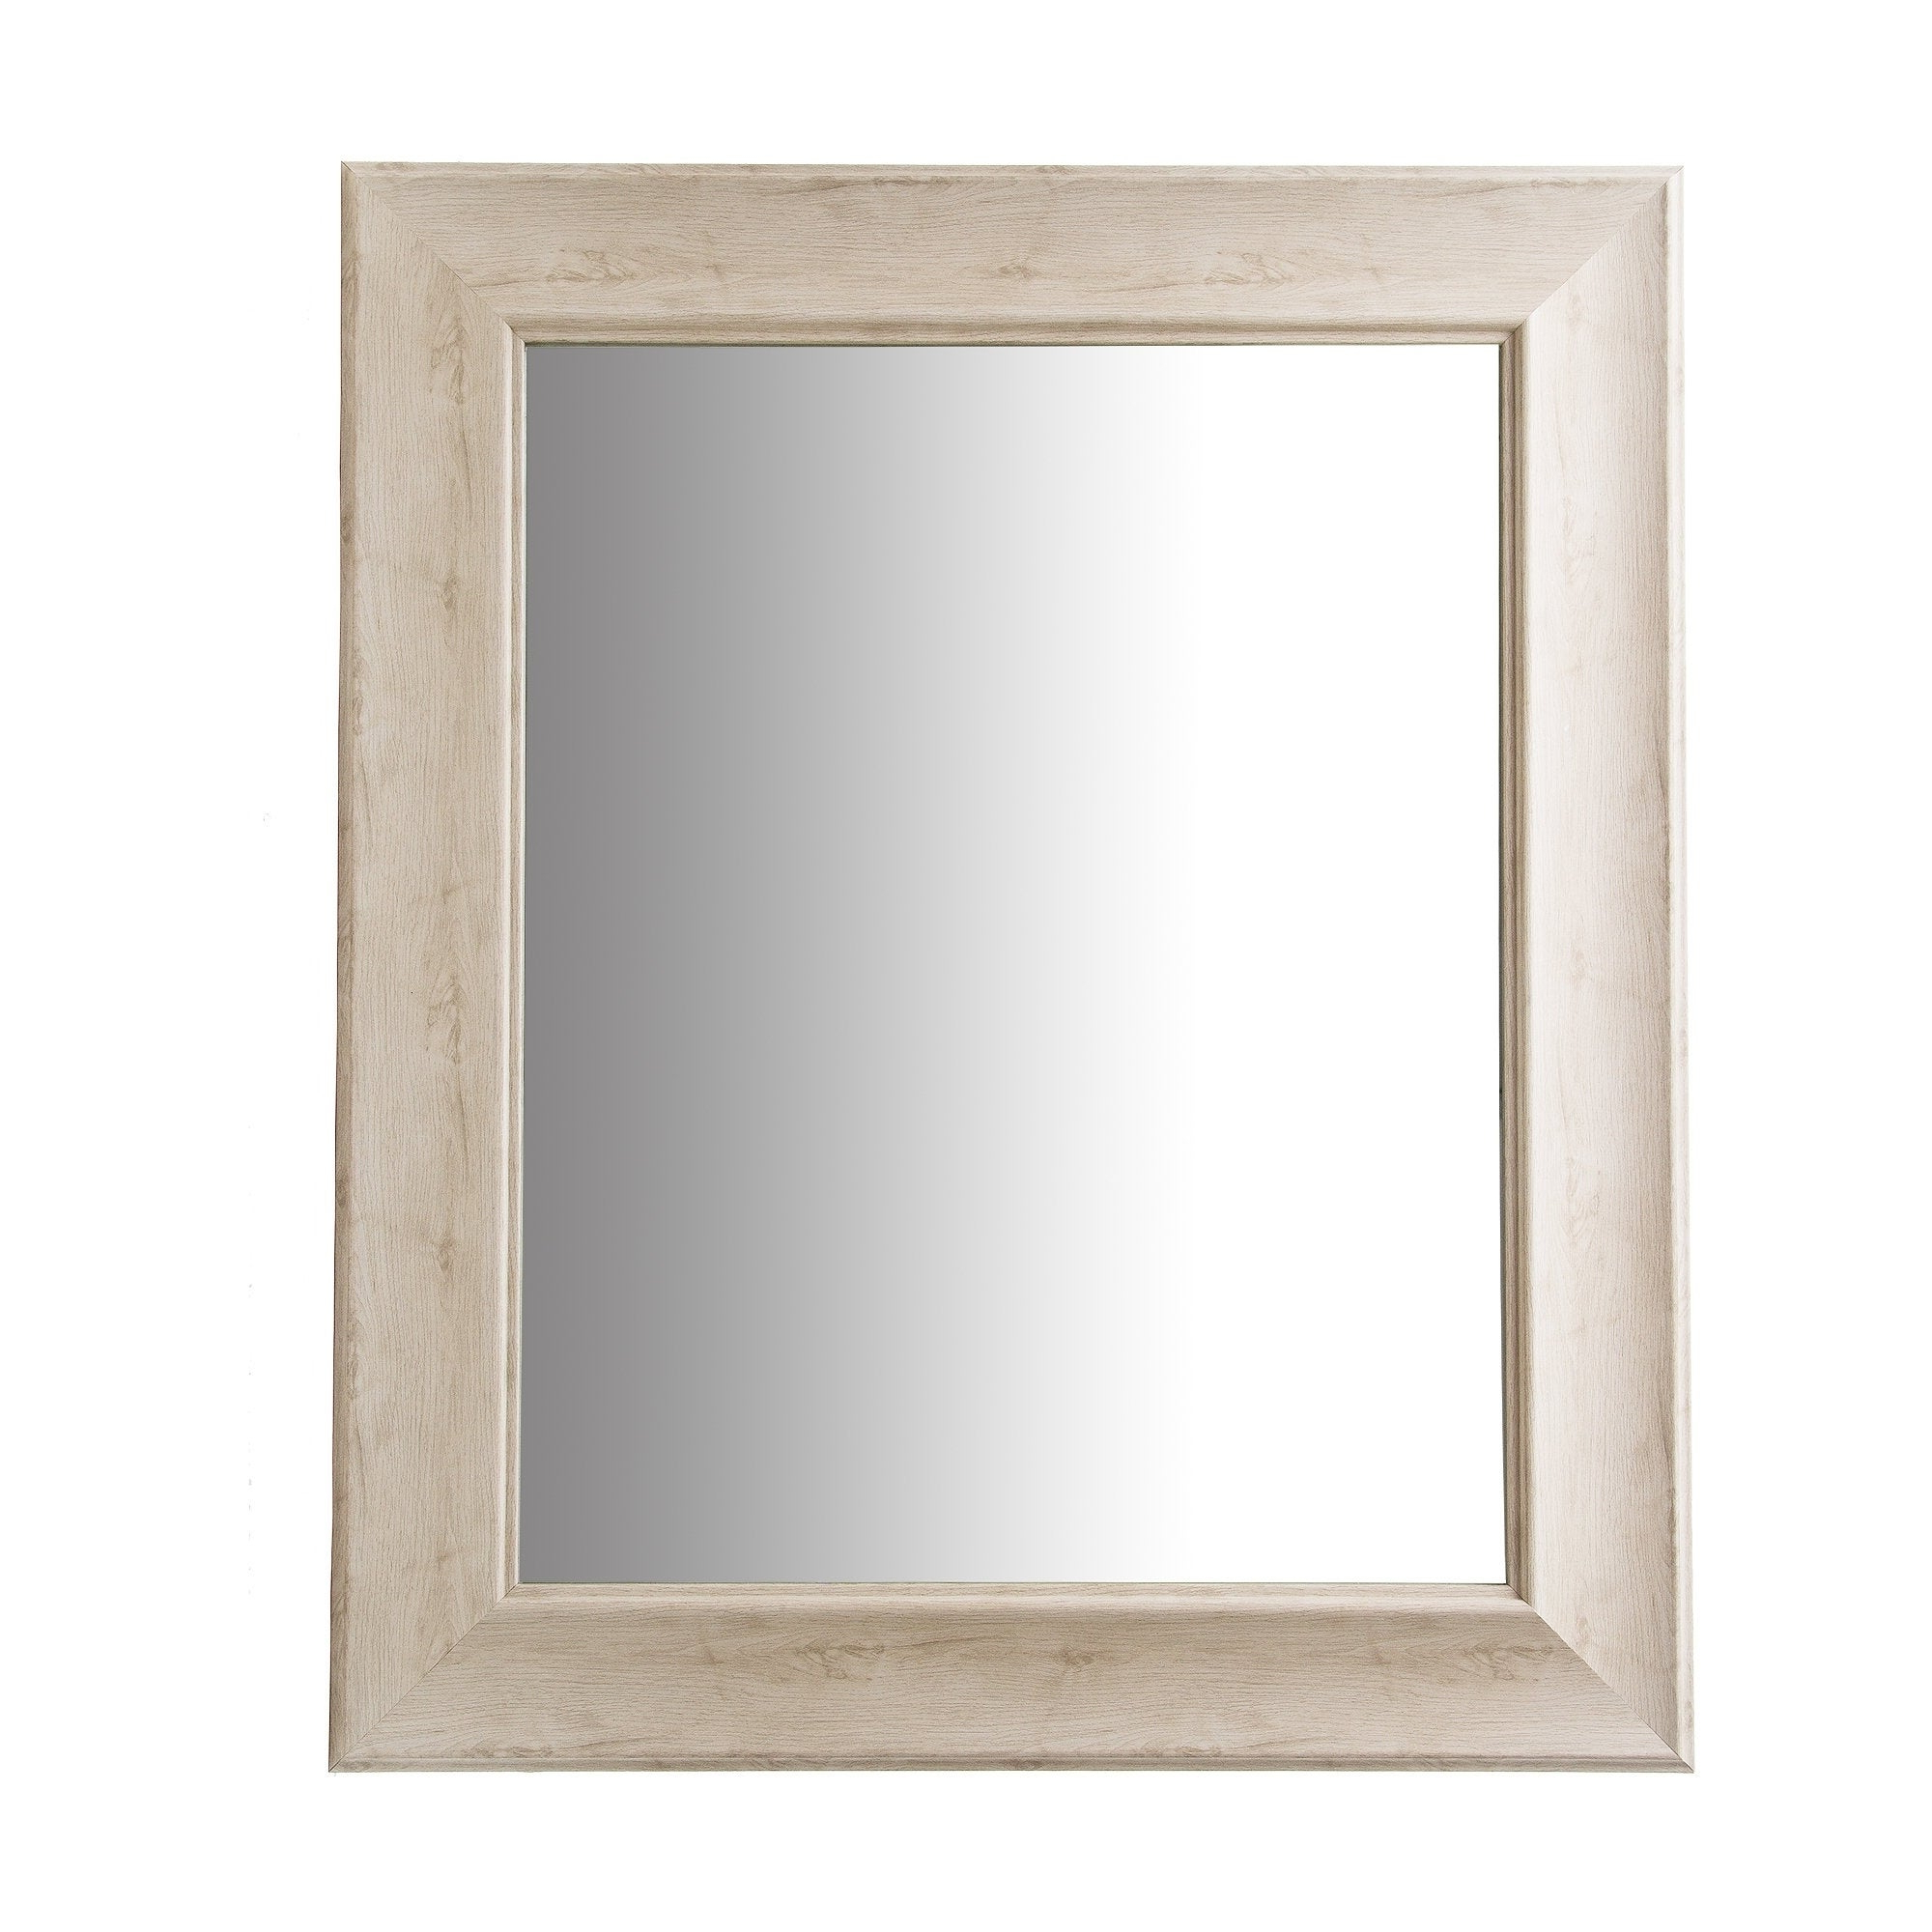 Fashionable Traditional Beveled Accent Mirrors Regarding 16X20 Traditional Beveled Wall Mirror (View 20 of 20)